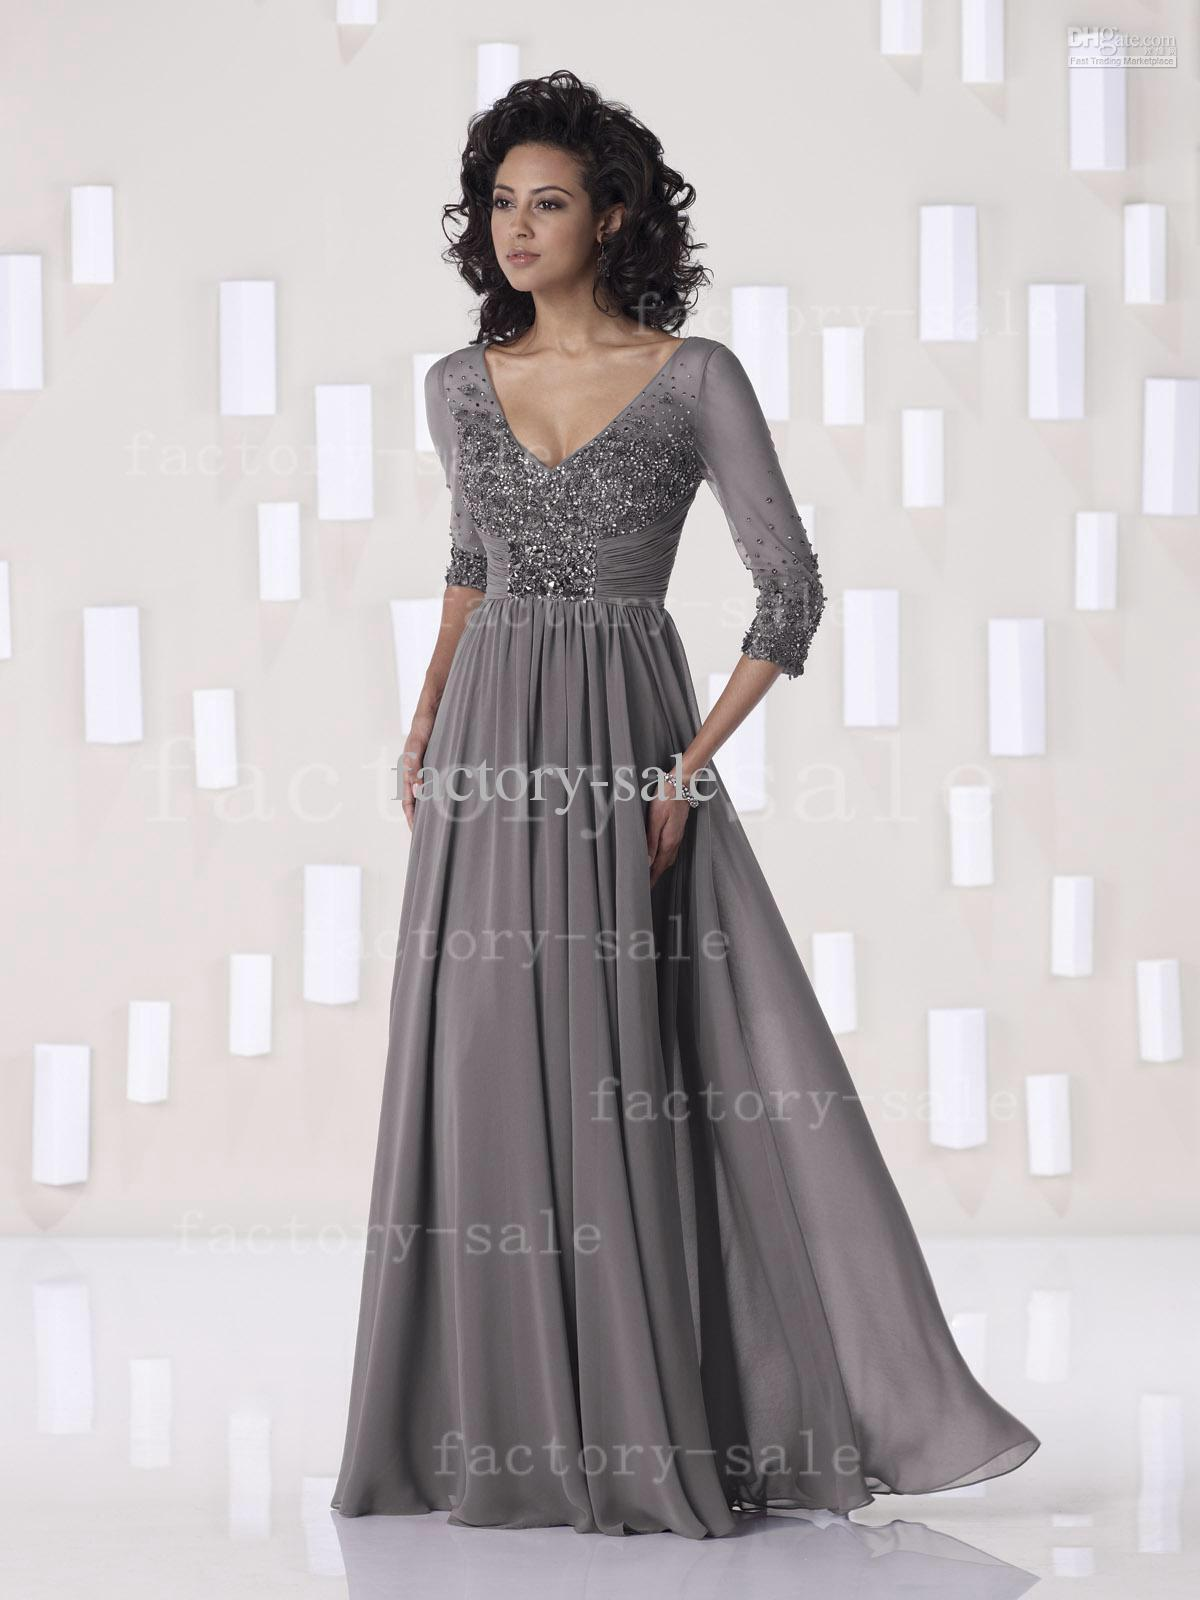 What dress would you wear to the Abnegation prom?